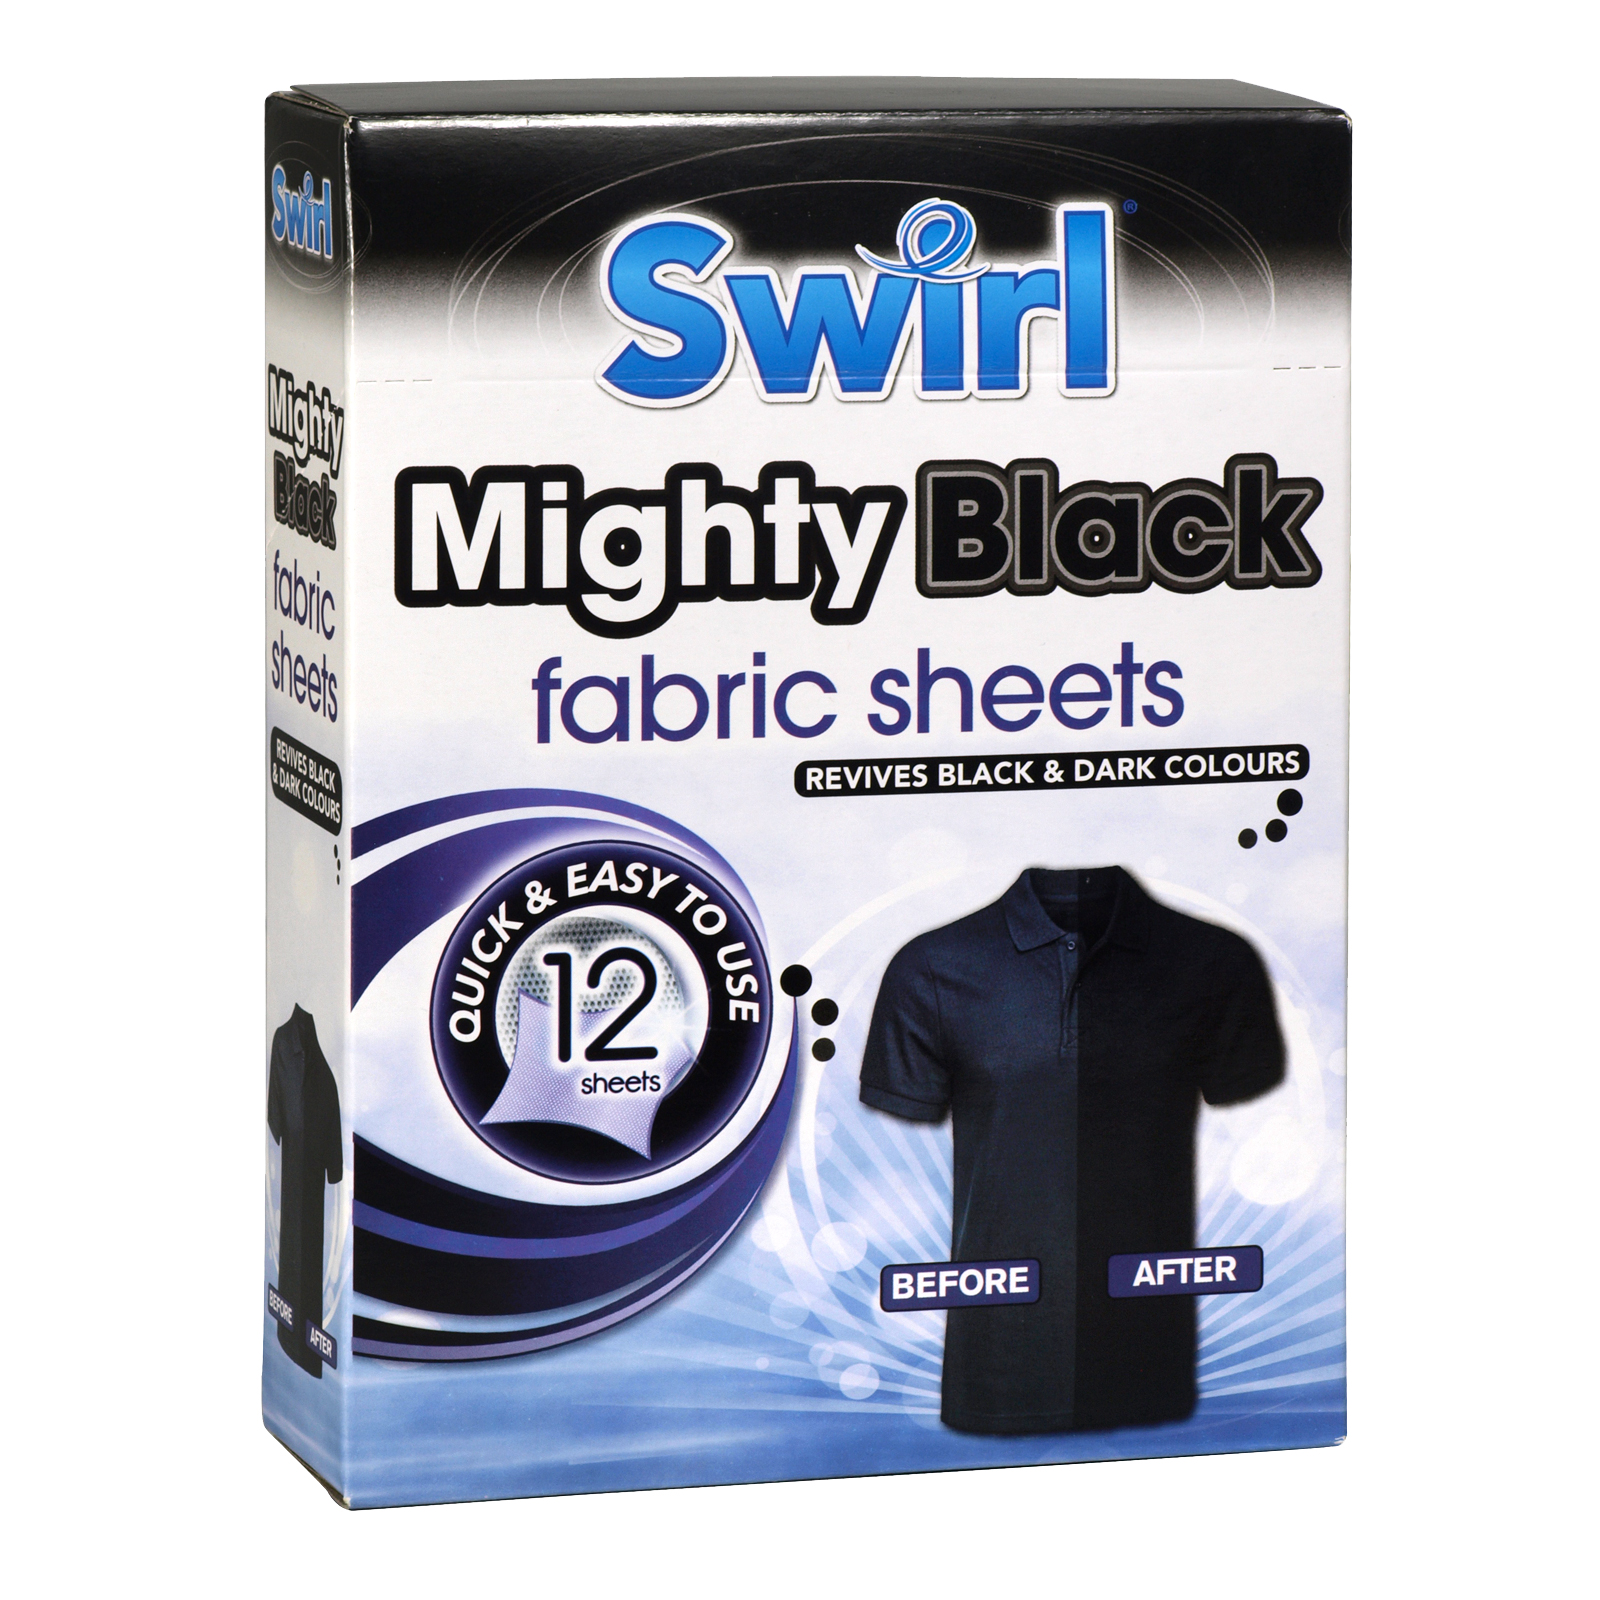 SWIRL MIGHTY 12 BLACK FABRIC SHEETS